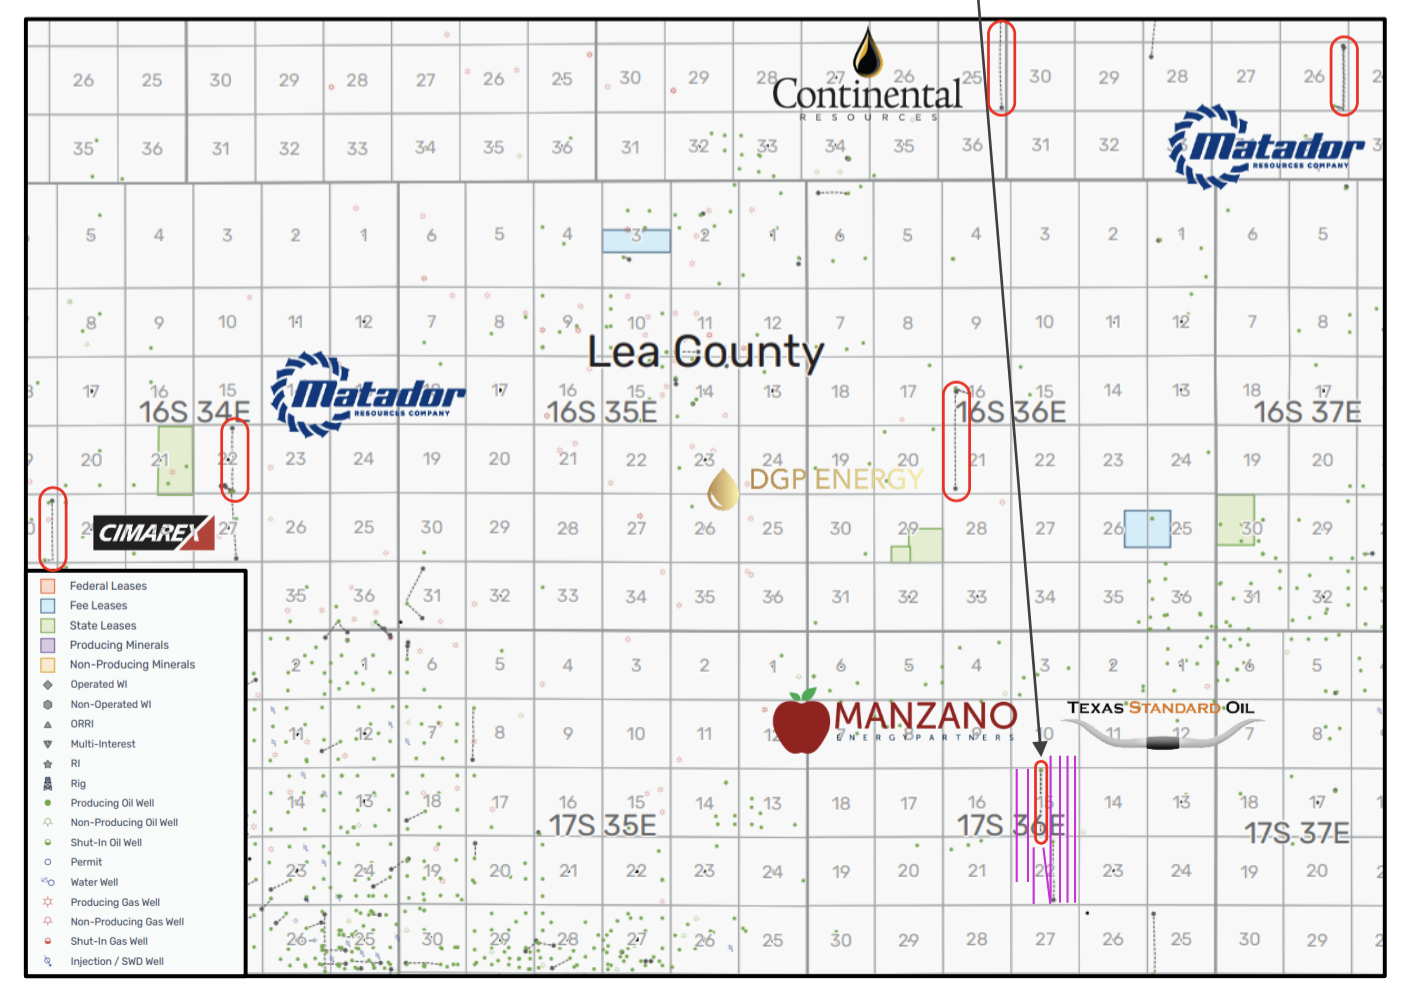 Marketed: Ridge Runner Resources Wolfcamp Shale Permian Basin Assets